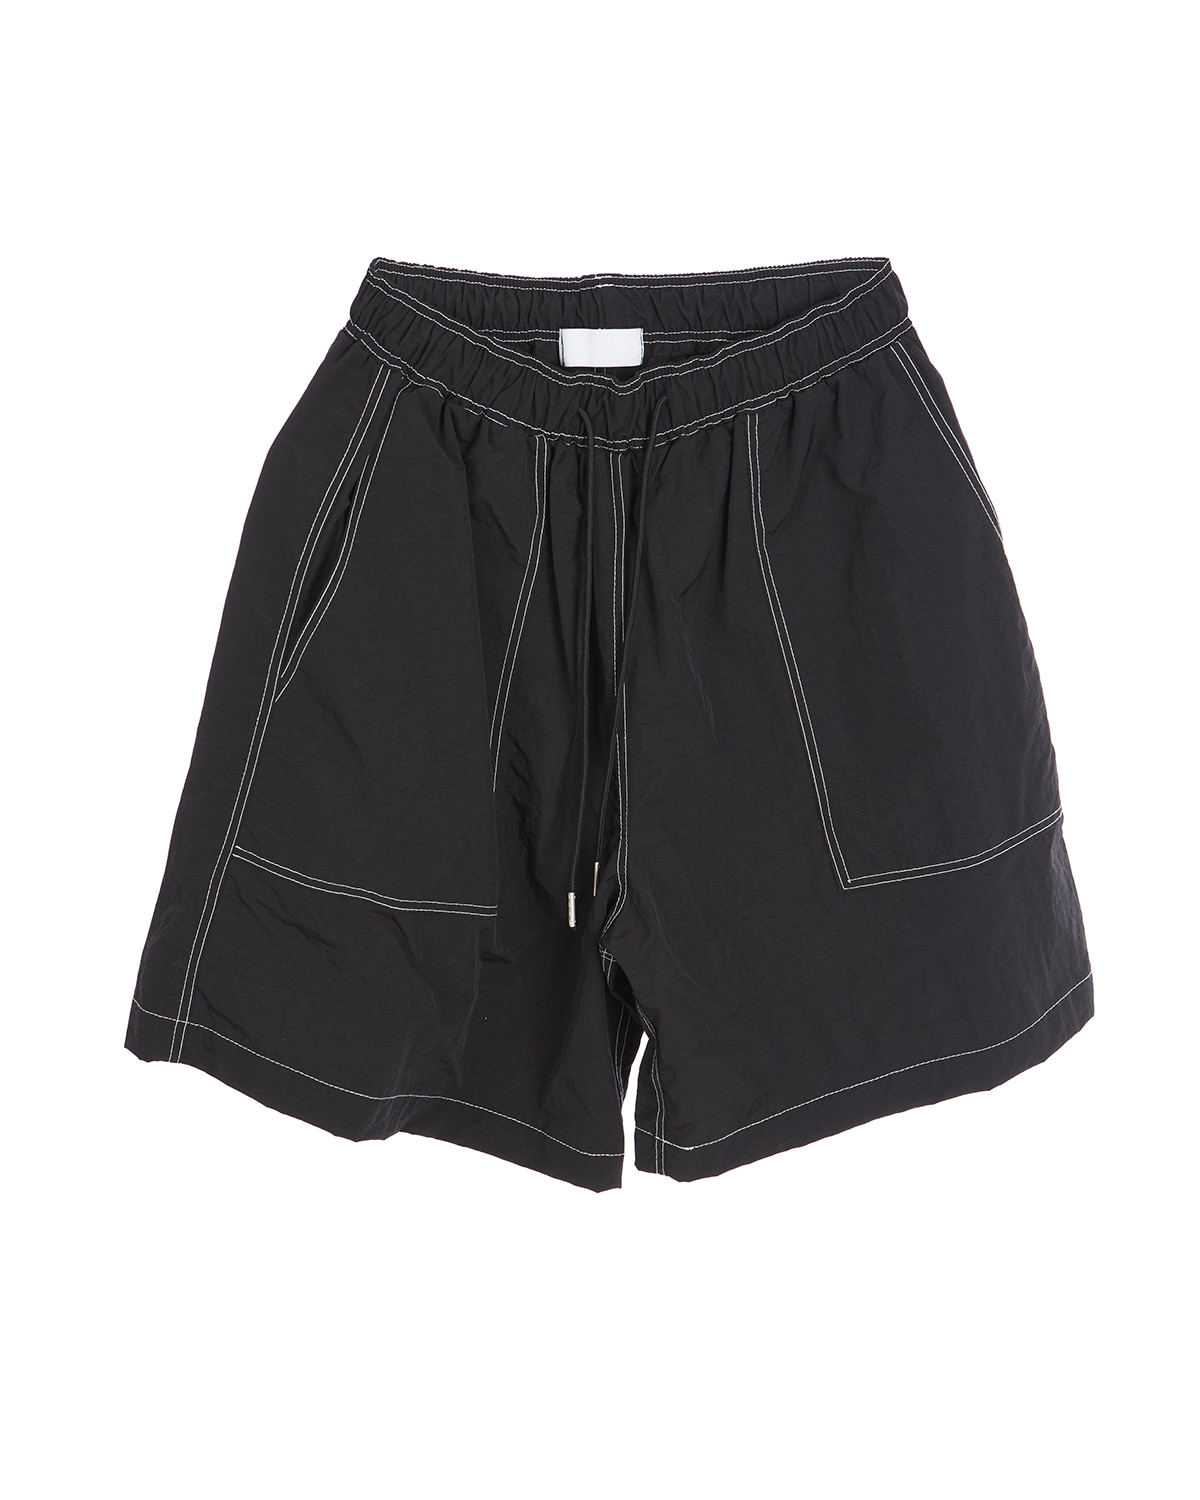 raucohouse-STITCH LINE SHORTS - RAUCO HOUSE♡韓國男裝褲子